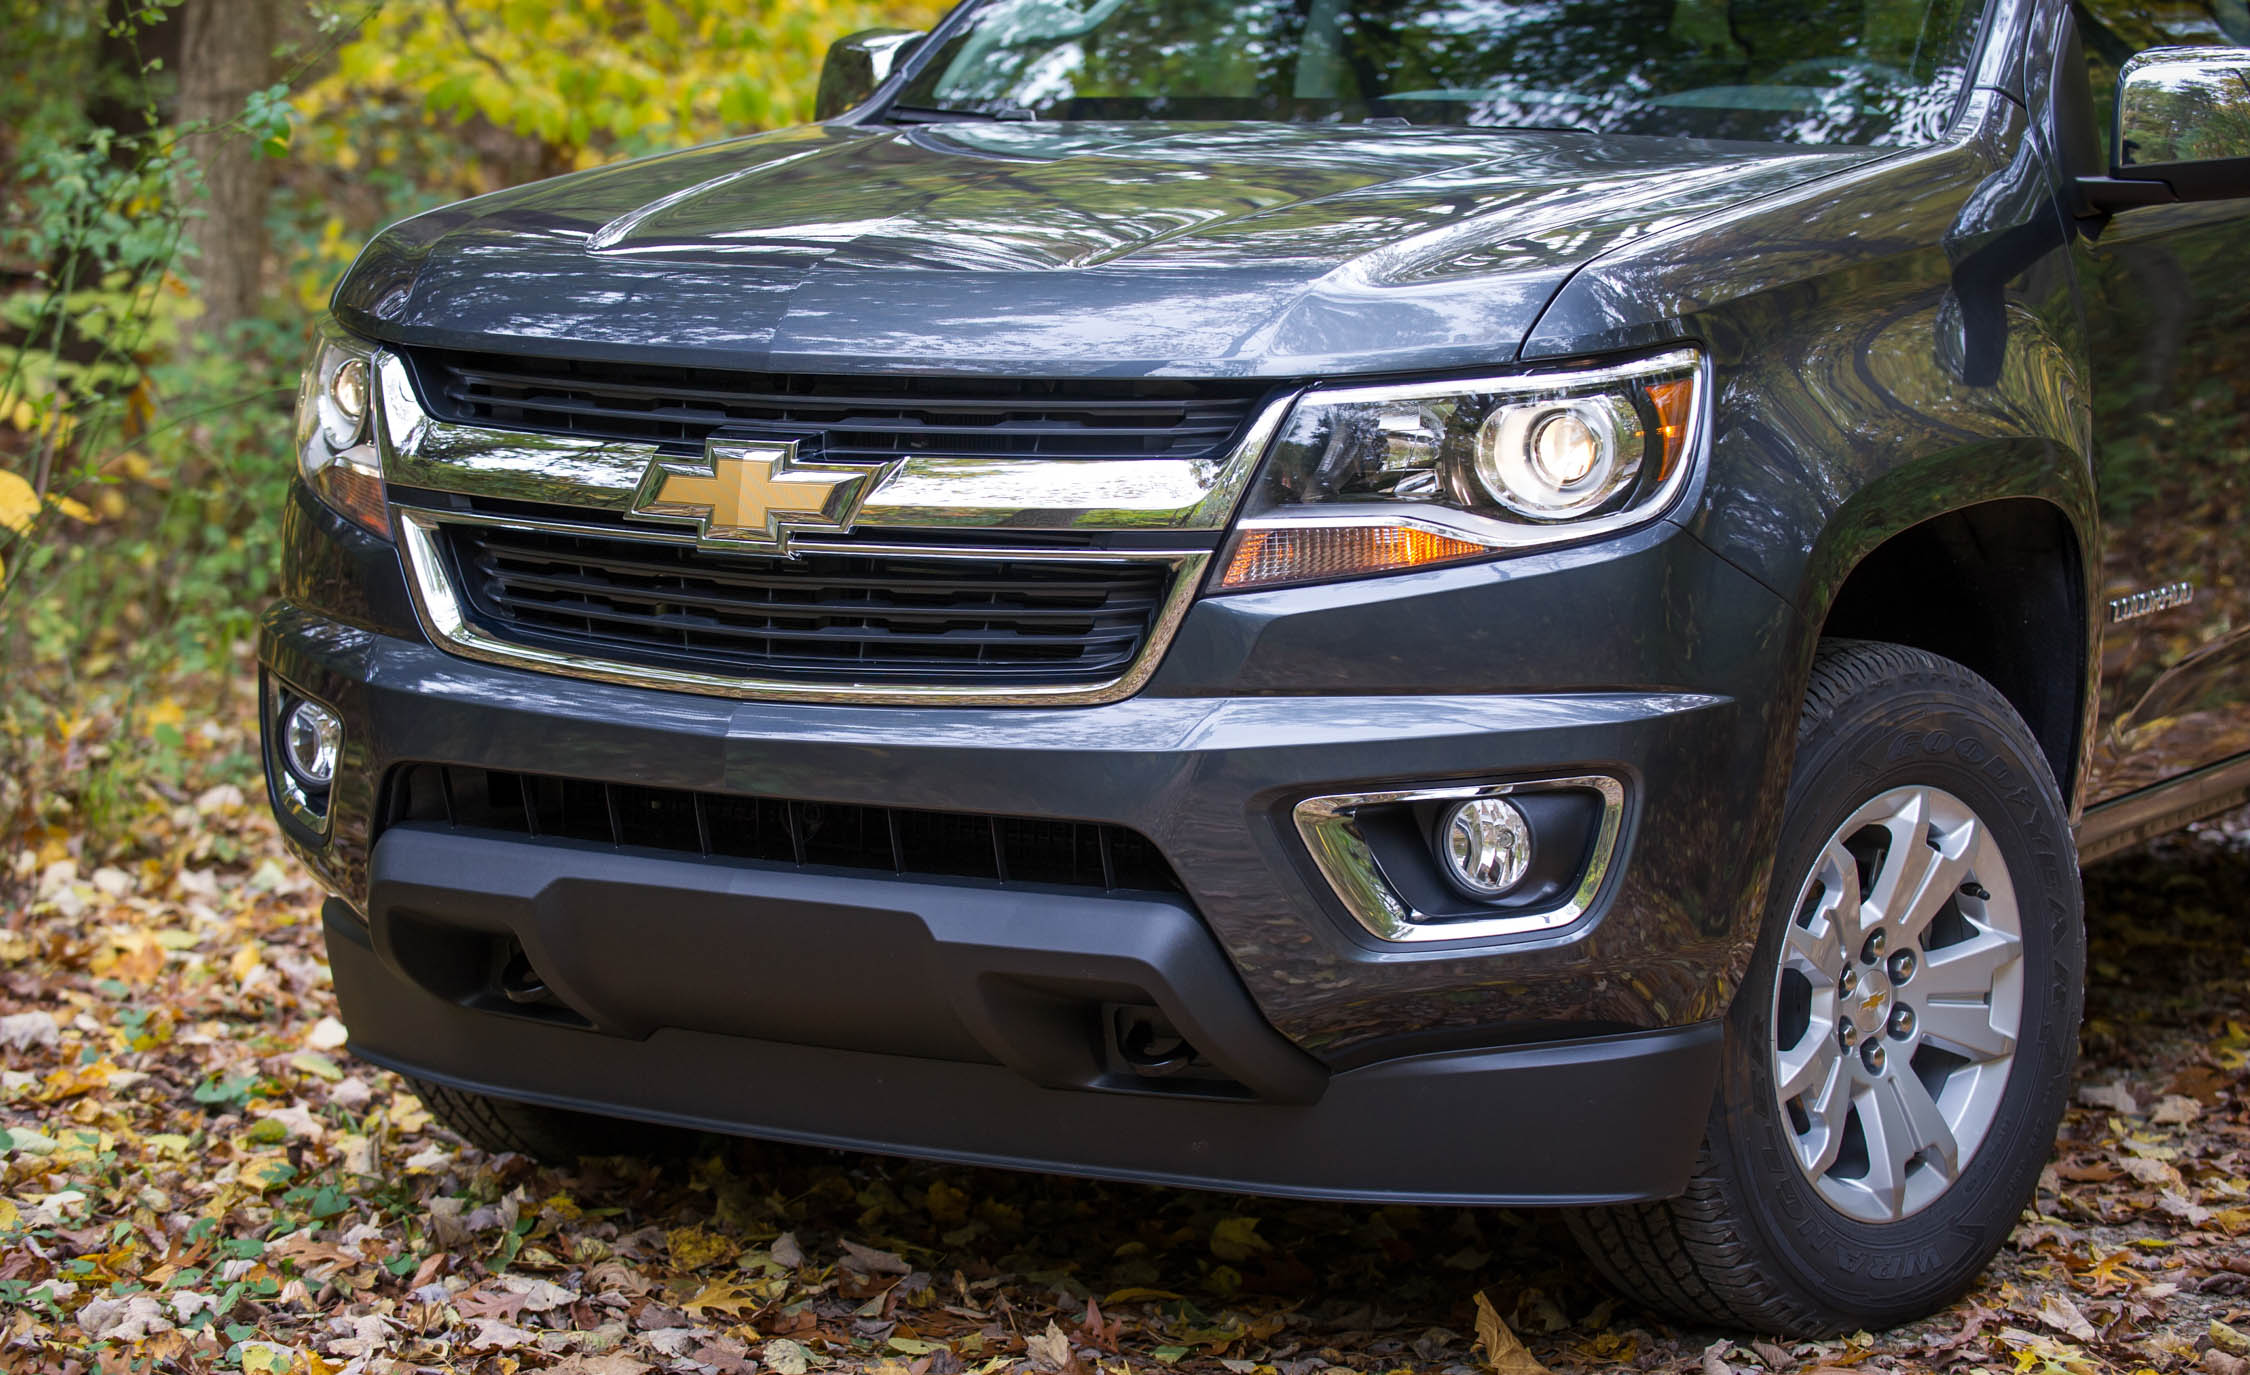 2017 Chevrolet Colorado LT Exterior View Grille And Bumper (Photo 24 of 41)